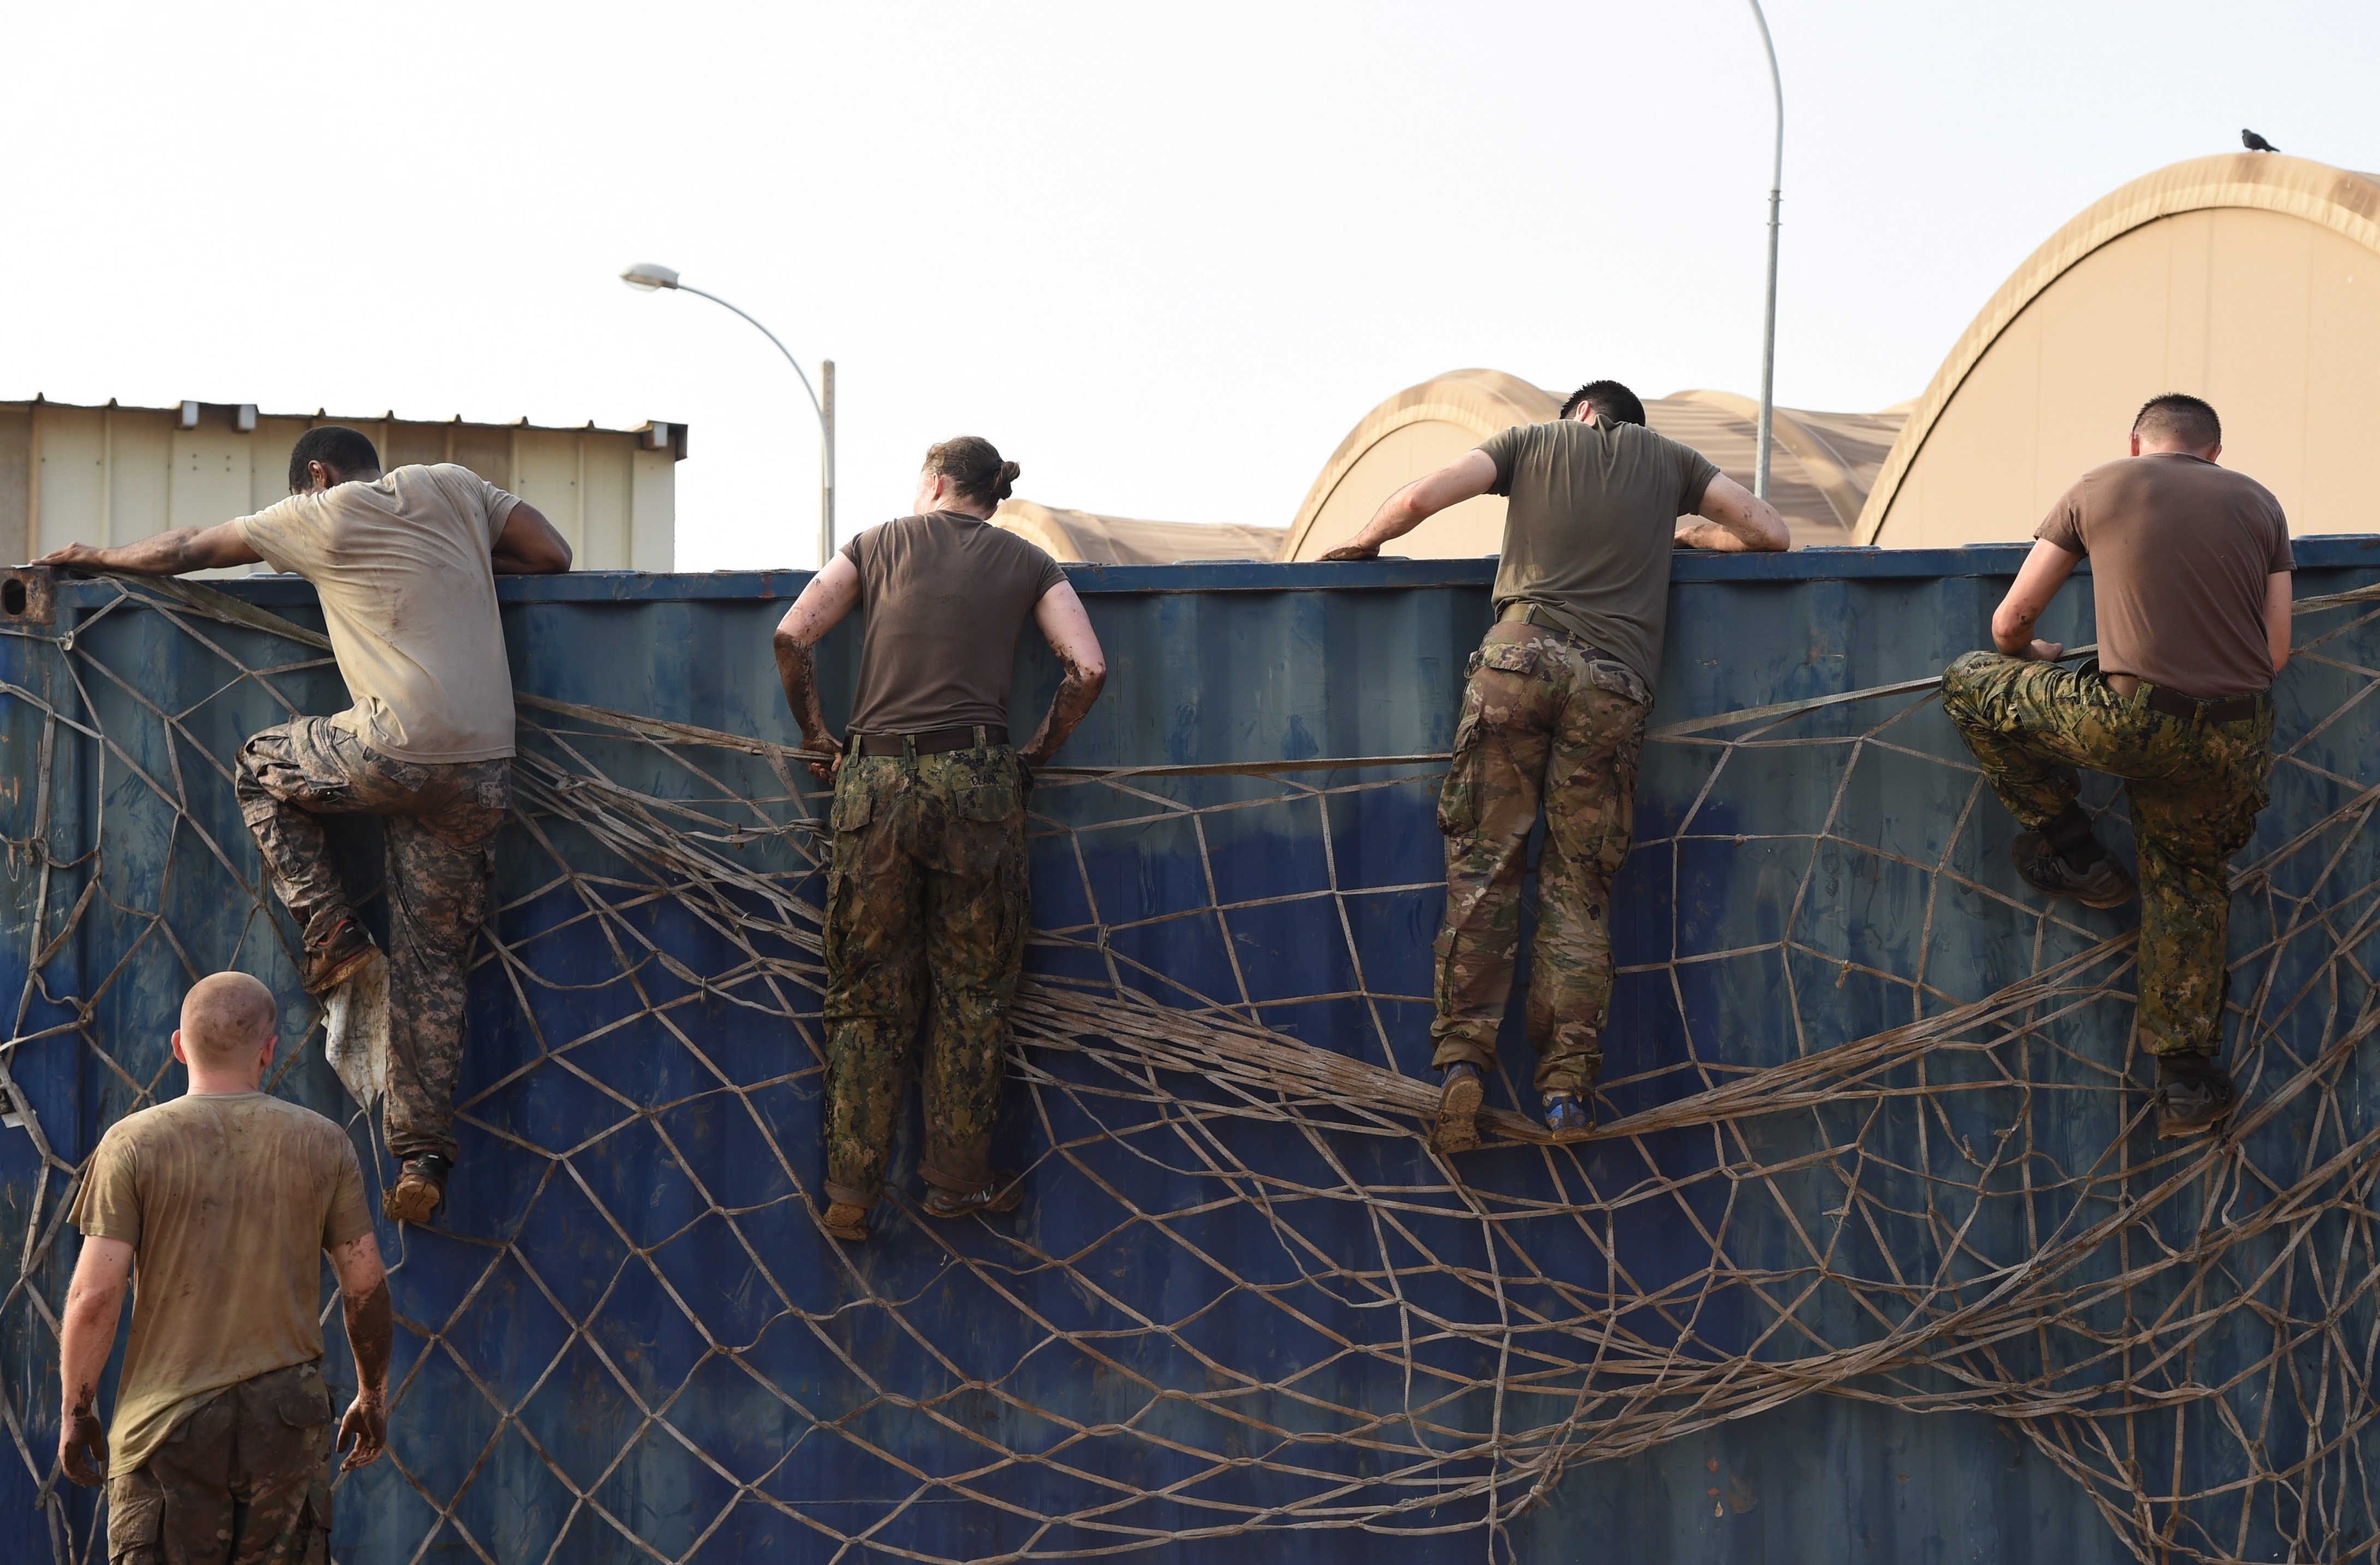 Service members from Combined Joint Task Force-Horn of Africa Civil Affairs climb over an obstacle during a mud run hosted by the French military, Nov. 6, 2016, in Djibouti, Djibouti. The event allowed coalition forces from French, Japanese, and American teams to interact and build camaraderie while navigating a five kilometer course. The French 5th Marine Regiment team took first place. (U.S. Air Force photo by Staff Sgt. Penny Snoozy)